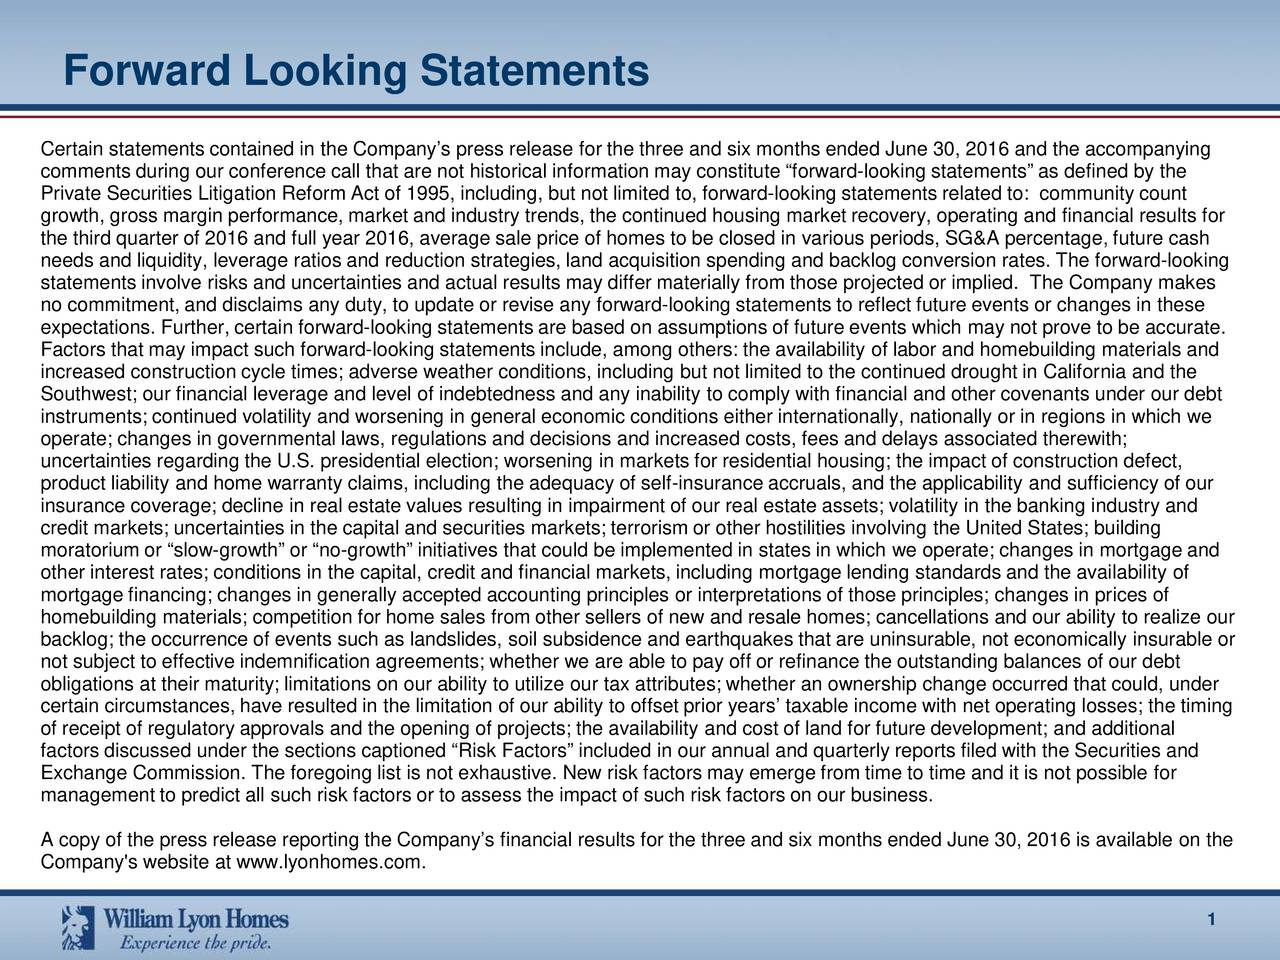 Certain statements contained in the Companys press releasefor the three and six months ended June 30, 2016 and the accompanying comments during our conference call that are not historical information may constitute forwardl-ooking statements as defined by the Private Securities Litigation Reform Act of 1995, including, but not limited to, forwlooking statements related to: communtiy count growth, gross margin performance, marketand industry trends, the continued housing market recovery, operatingand financial results for the third quarter of 2016 and full year 2016, average sale price of homes to be closed in various periods, SG&A percentage, futurecash needs and liquidity, leverage ratios and reduction strategies, land acquisition spending and backlog conversion rates. The forward-looking statements involve risks and uncertainties and actual results may differ materially from those projected or implied. The Com pany makes no commitment, and disclaims any duty, to update or revise any forward-looking statements to reflect future events or changes inthese expectations. Further, certain forward-looking statements are based on assumptions of future events which may not prove to be accurate. Factors that may impact such forward-looking statements include, among others: the availability of labor and homebuilding mater ails and increased construction cycle times; adverse weather conditions, including but not limited to the continued drought in Califoria and the Southwest; our financial leverage and level of indebtedness and any inability to comply with financial and other covenants underour debt instruments; continued volatility and worsening in general economic conditions either internationally, nationally or in regionsin which we operate; changes in governmental laws, regulations and decisions and increased costs, fees and delays associated therewith; uncertainties regarding the U.S. presidential election; worseningin markets for residential housing; the impact of const